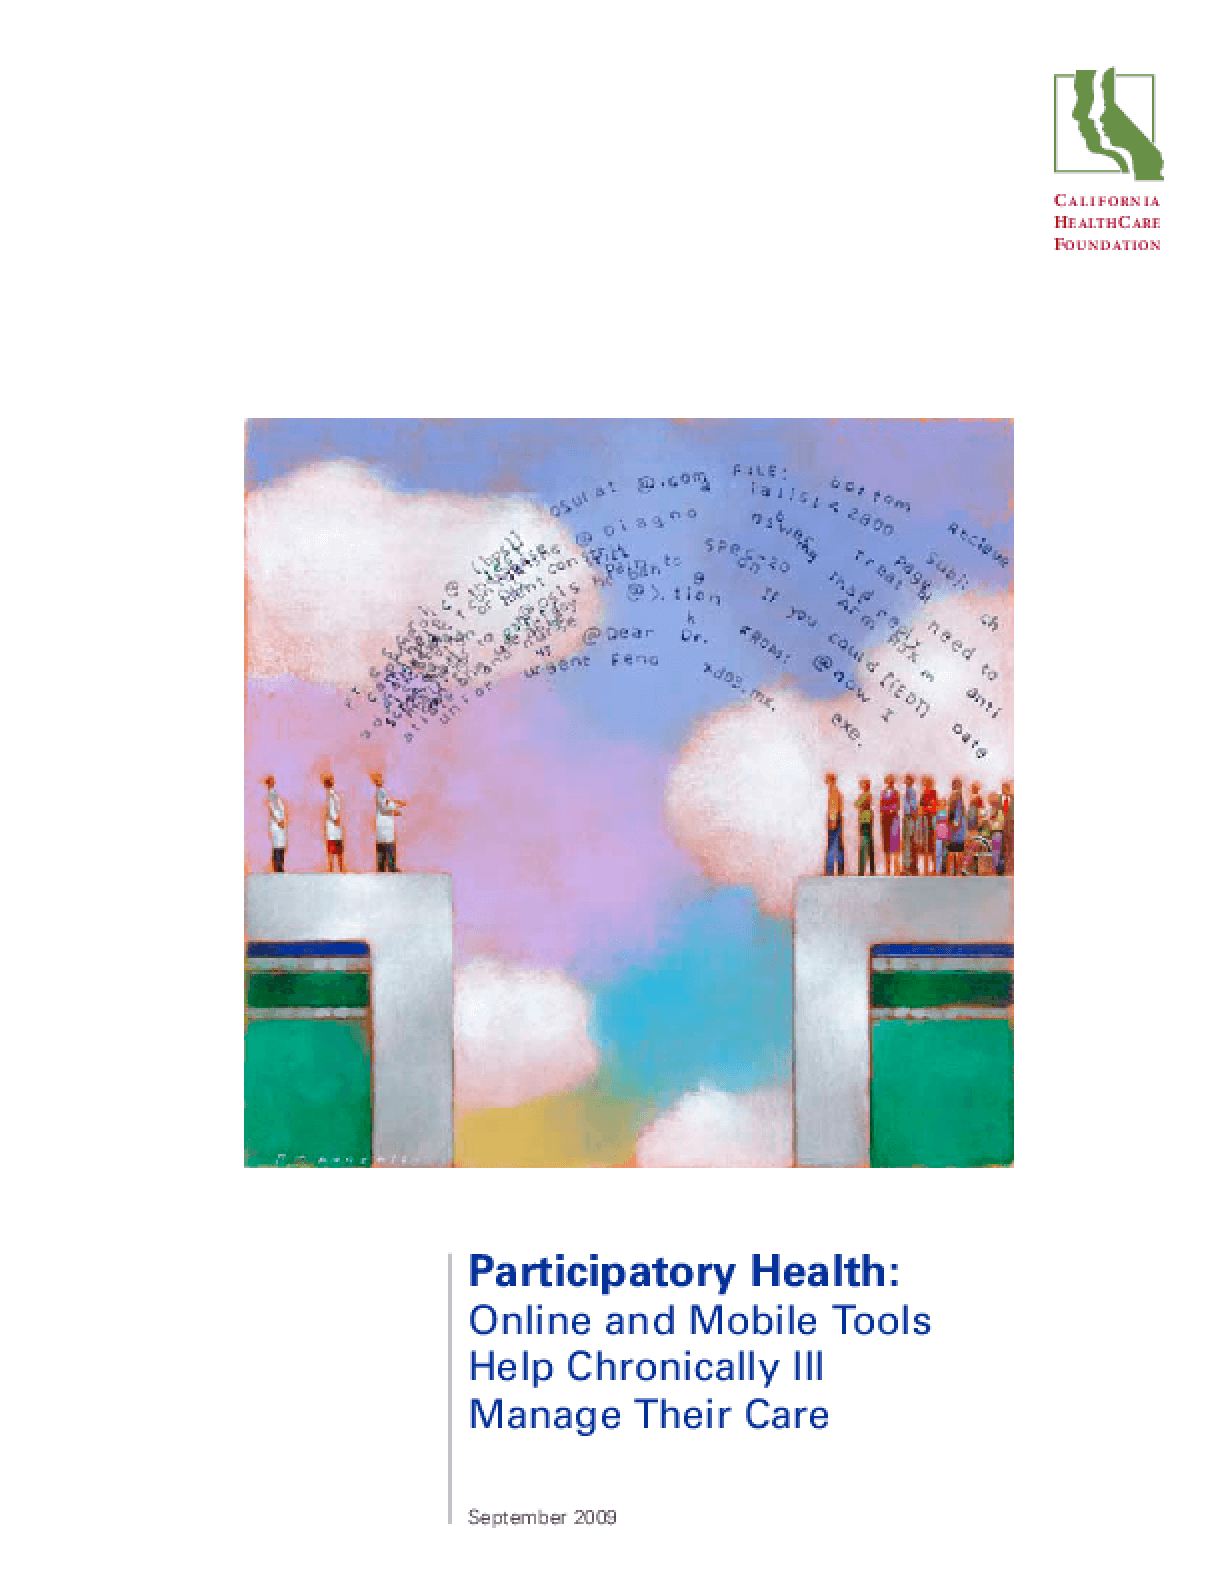 Participatory Health: Online and Mobile Tools Help Chronically Ill Manage Their Care